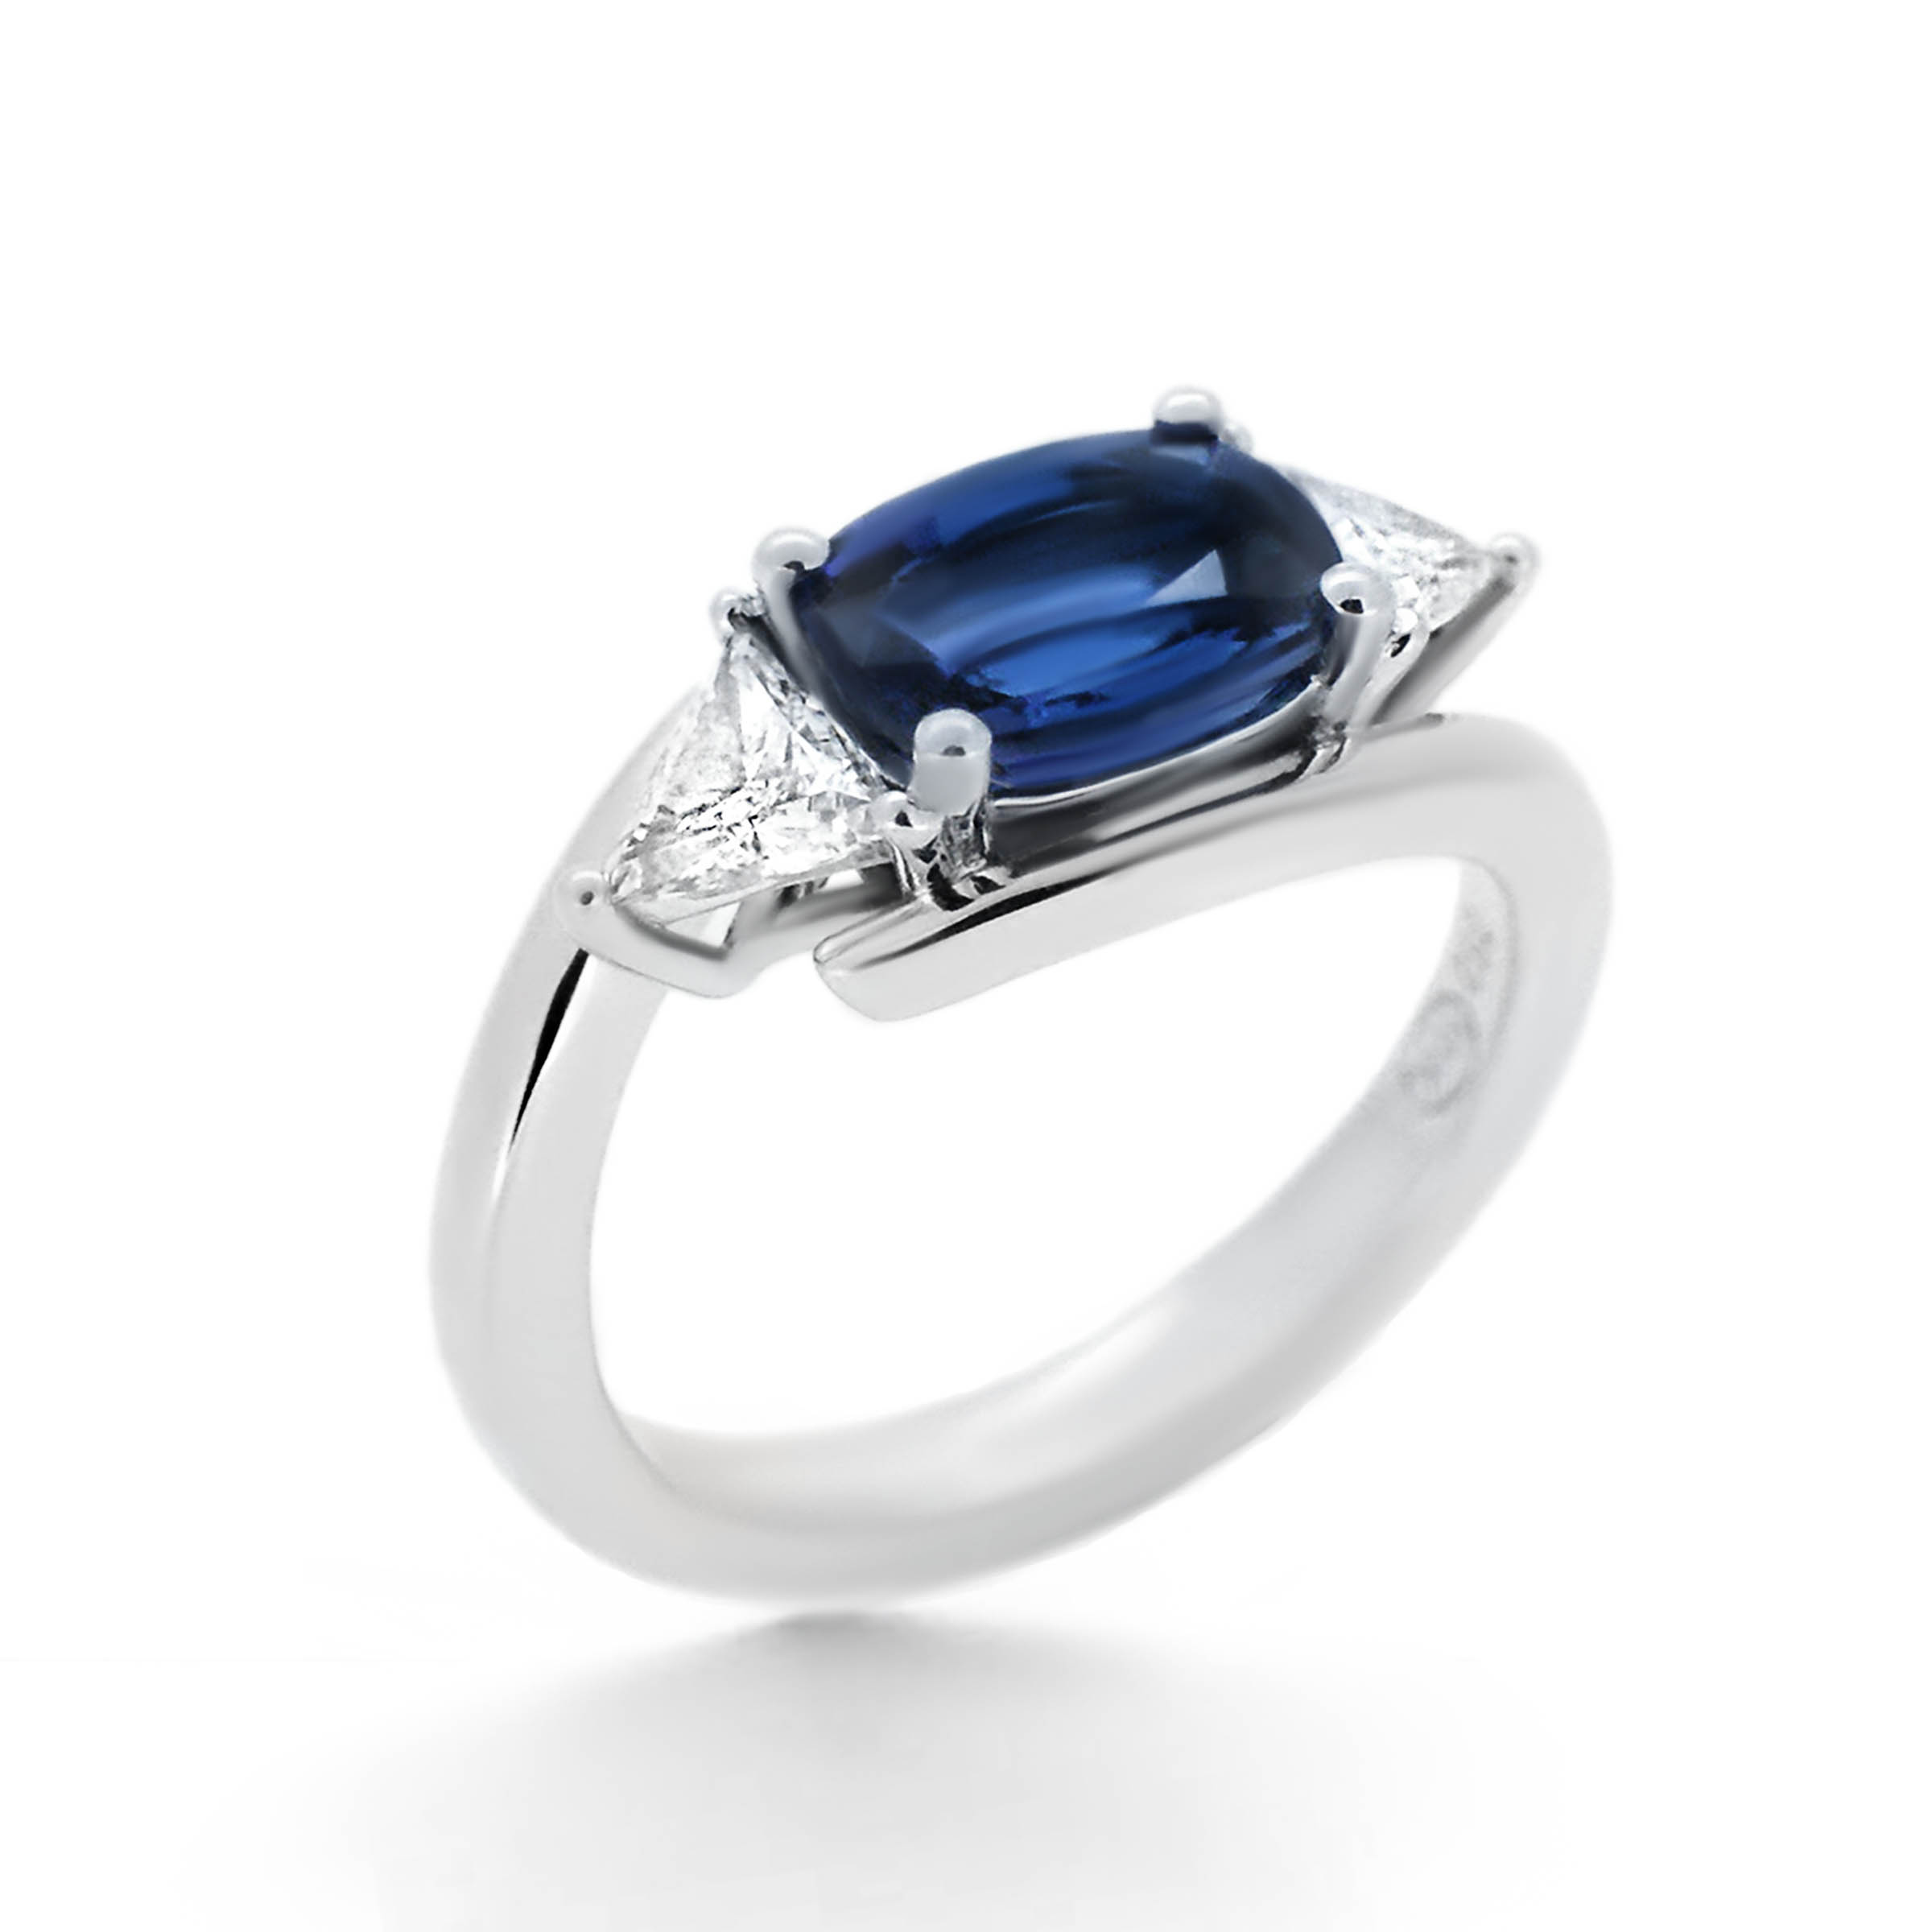 diamond white carat ring miabella gold t w stone bands in ip sapphire engagement three